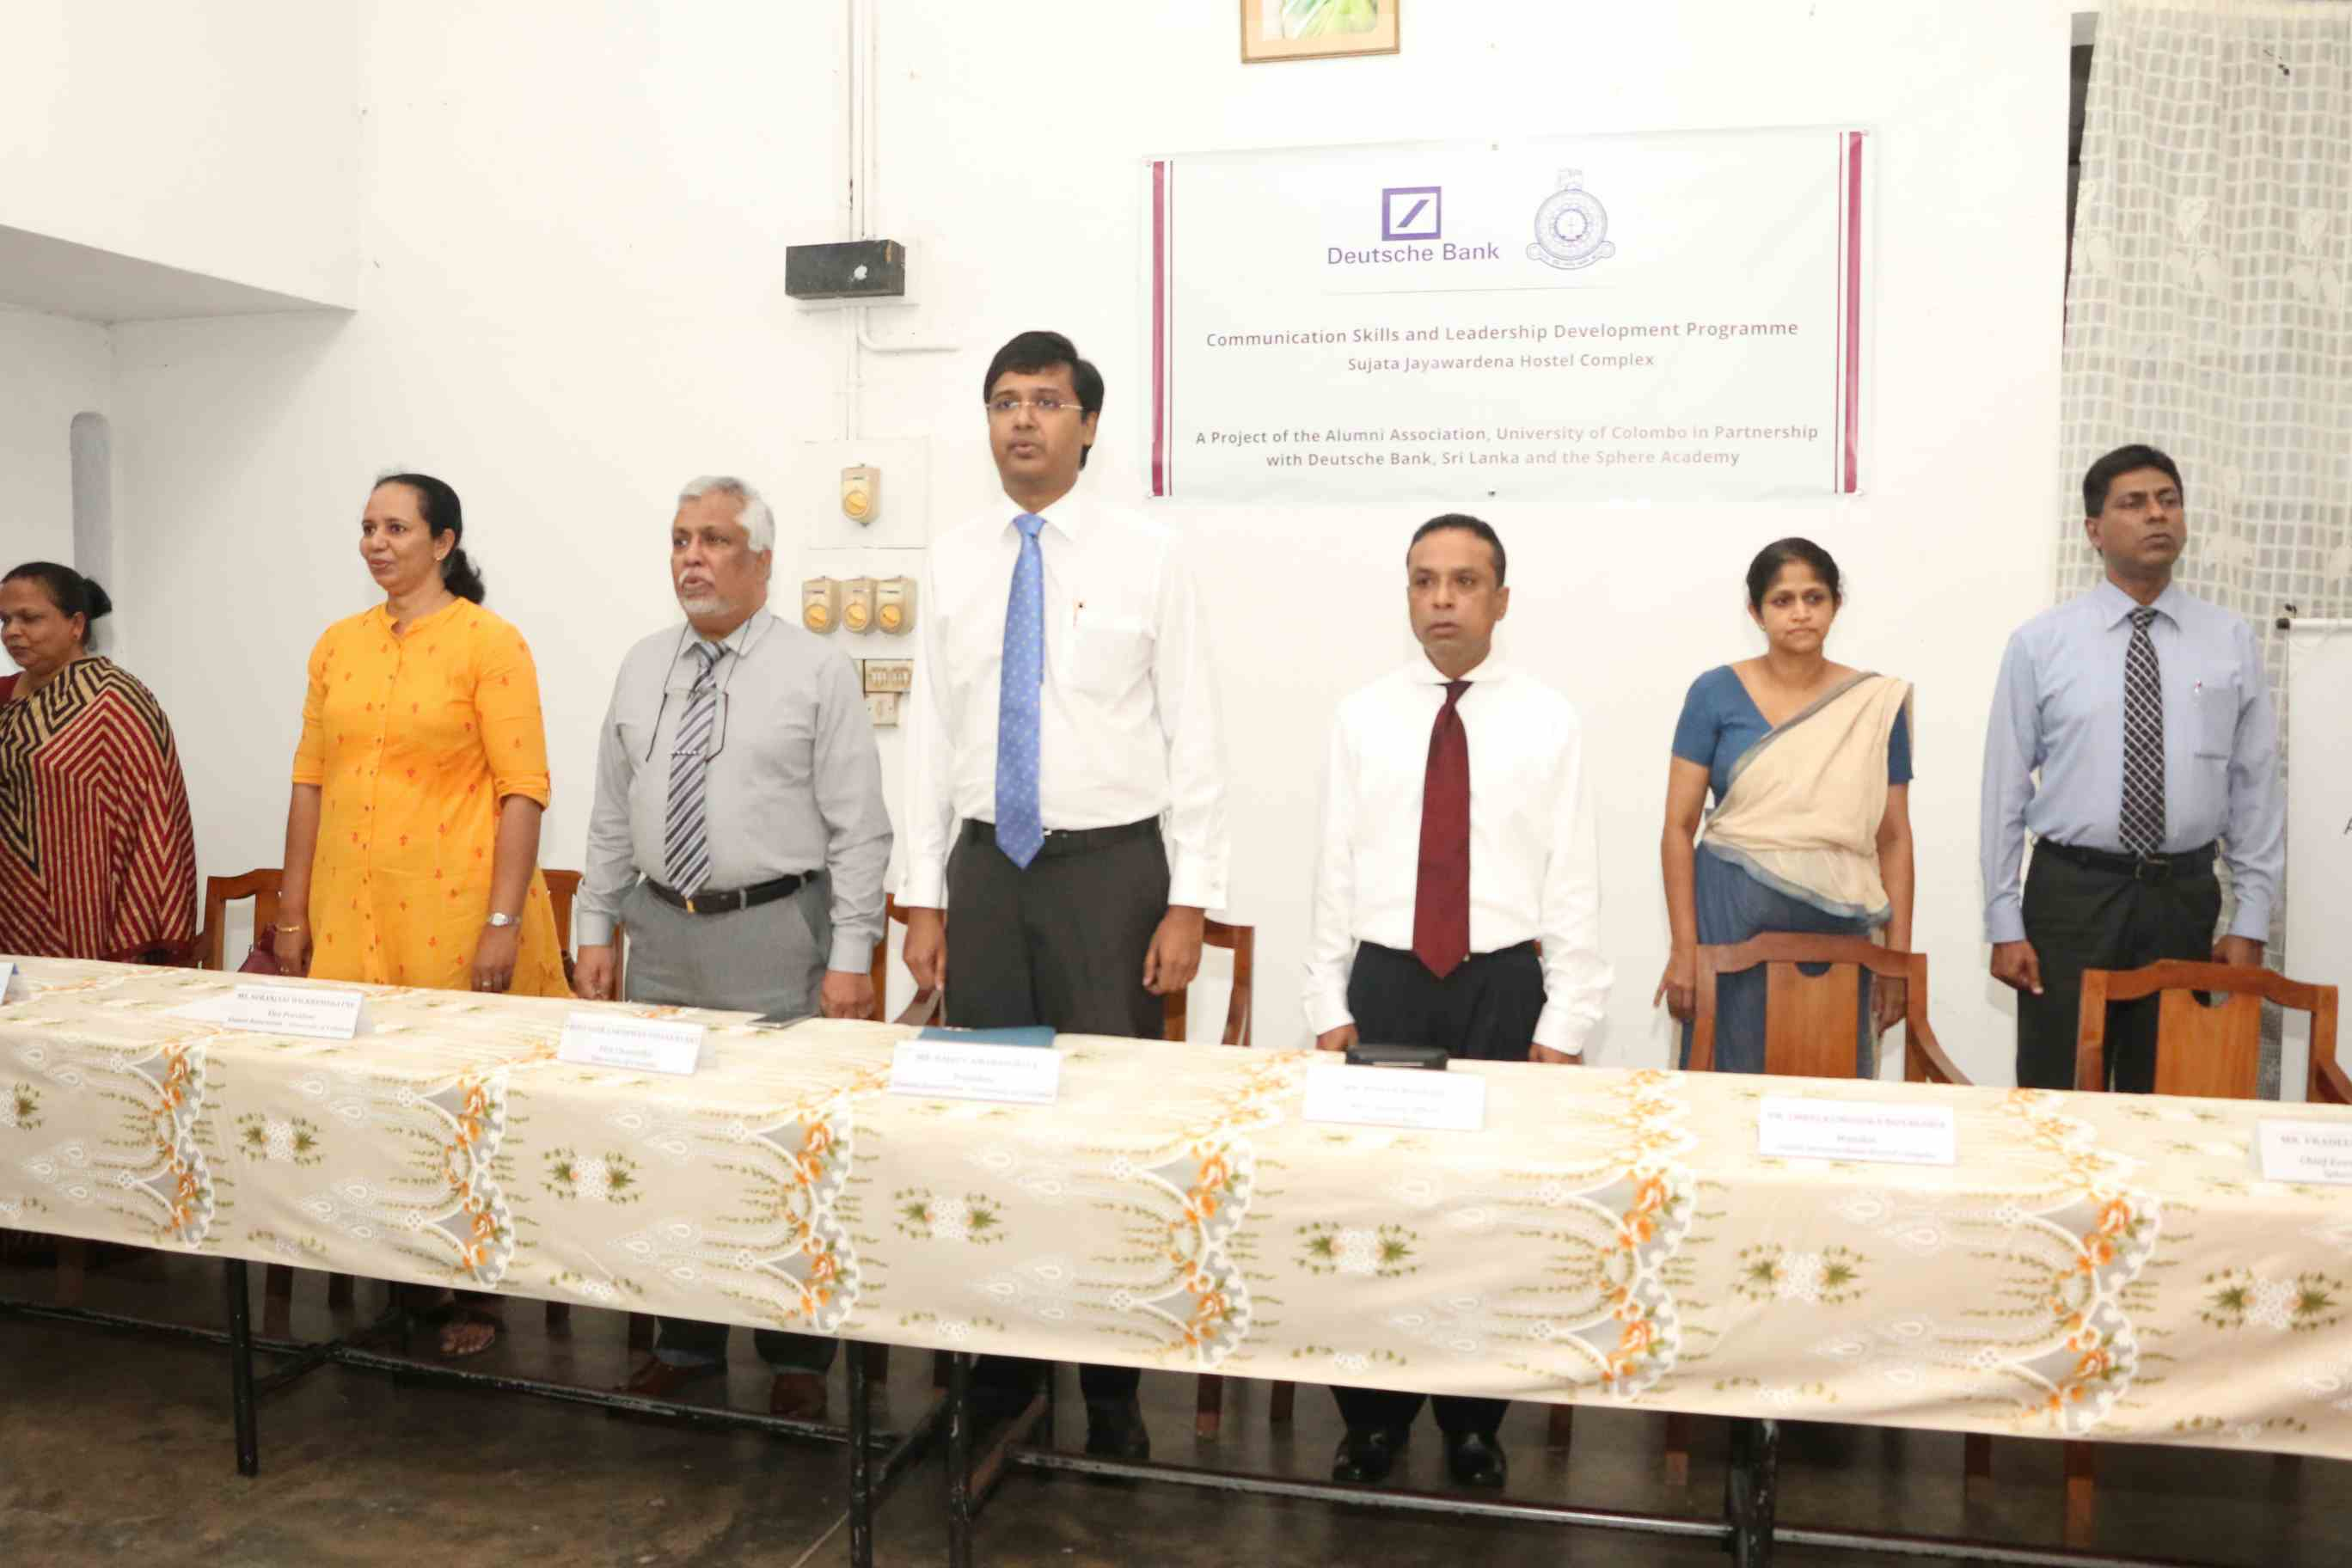 Inauguration of the Communication Skills and Leadership Programme